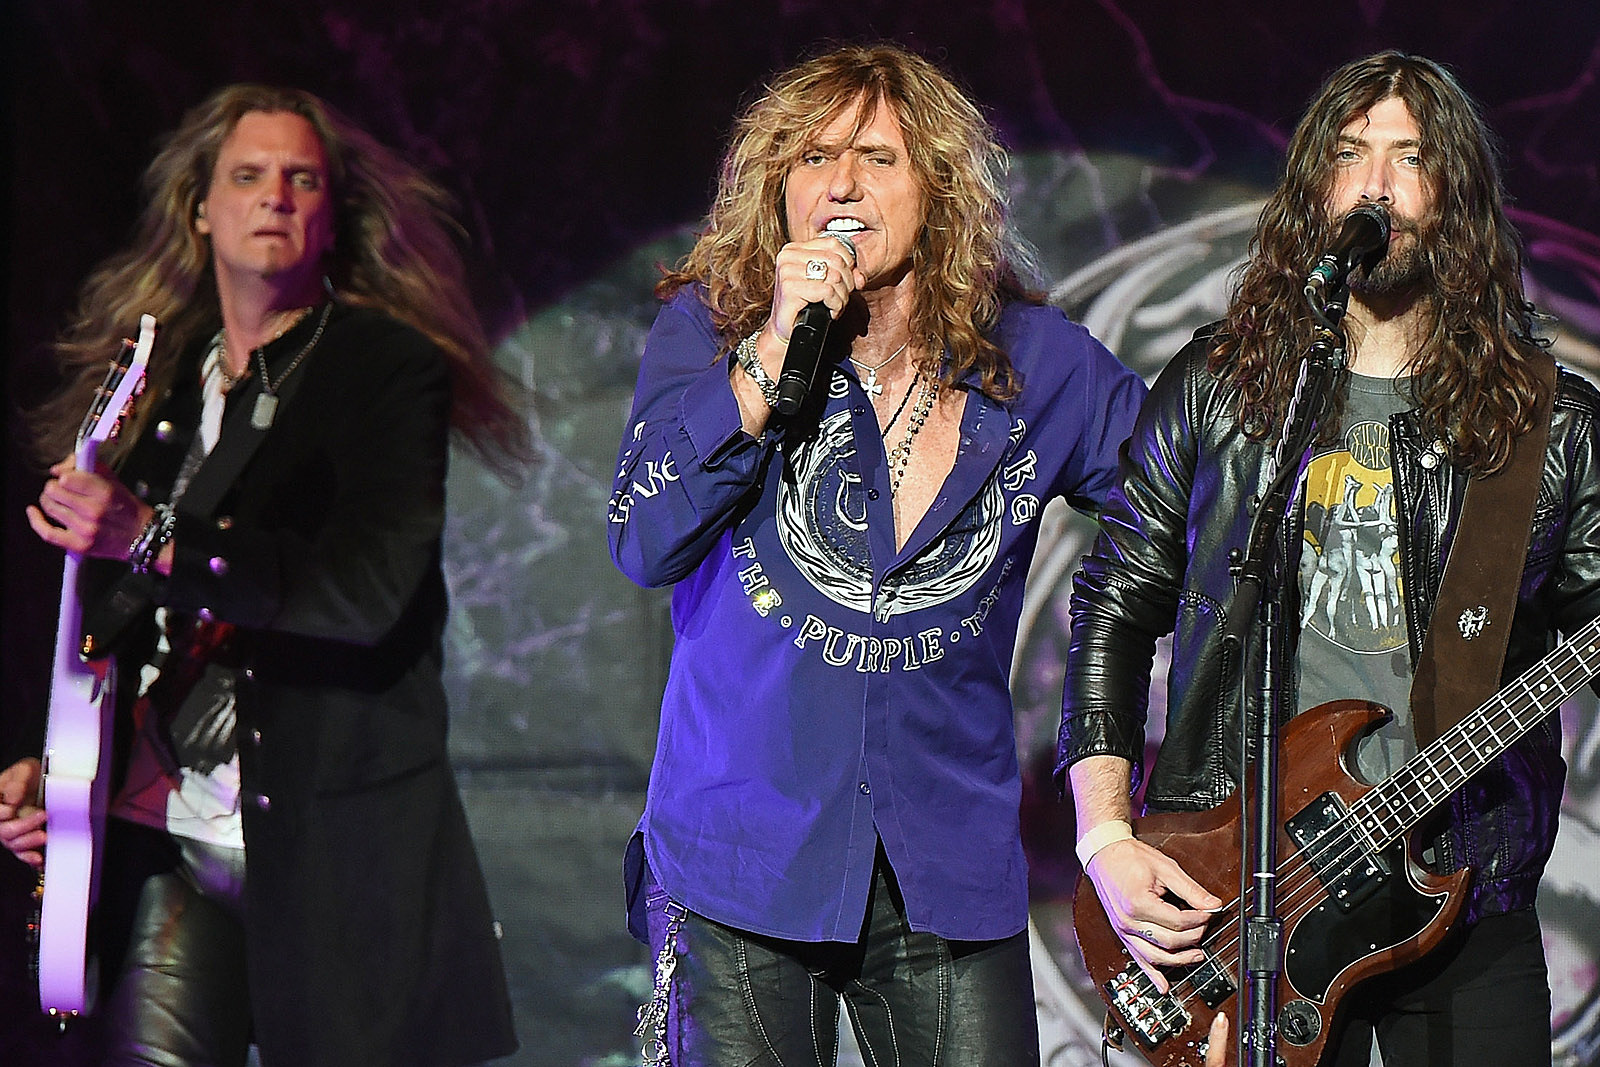 Whitesnake Announce New LP 'Flesh and Blood' and U.S. Tour